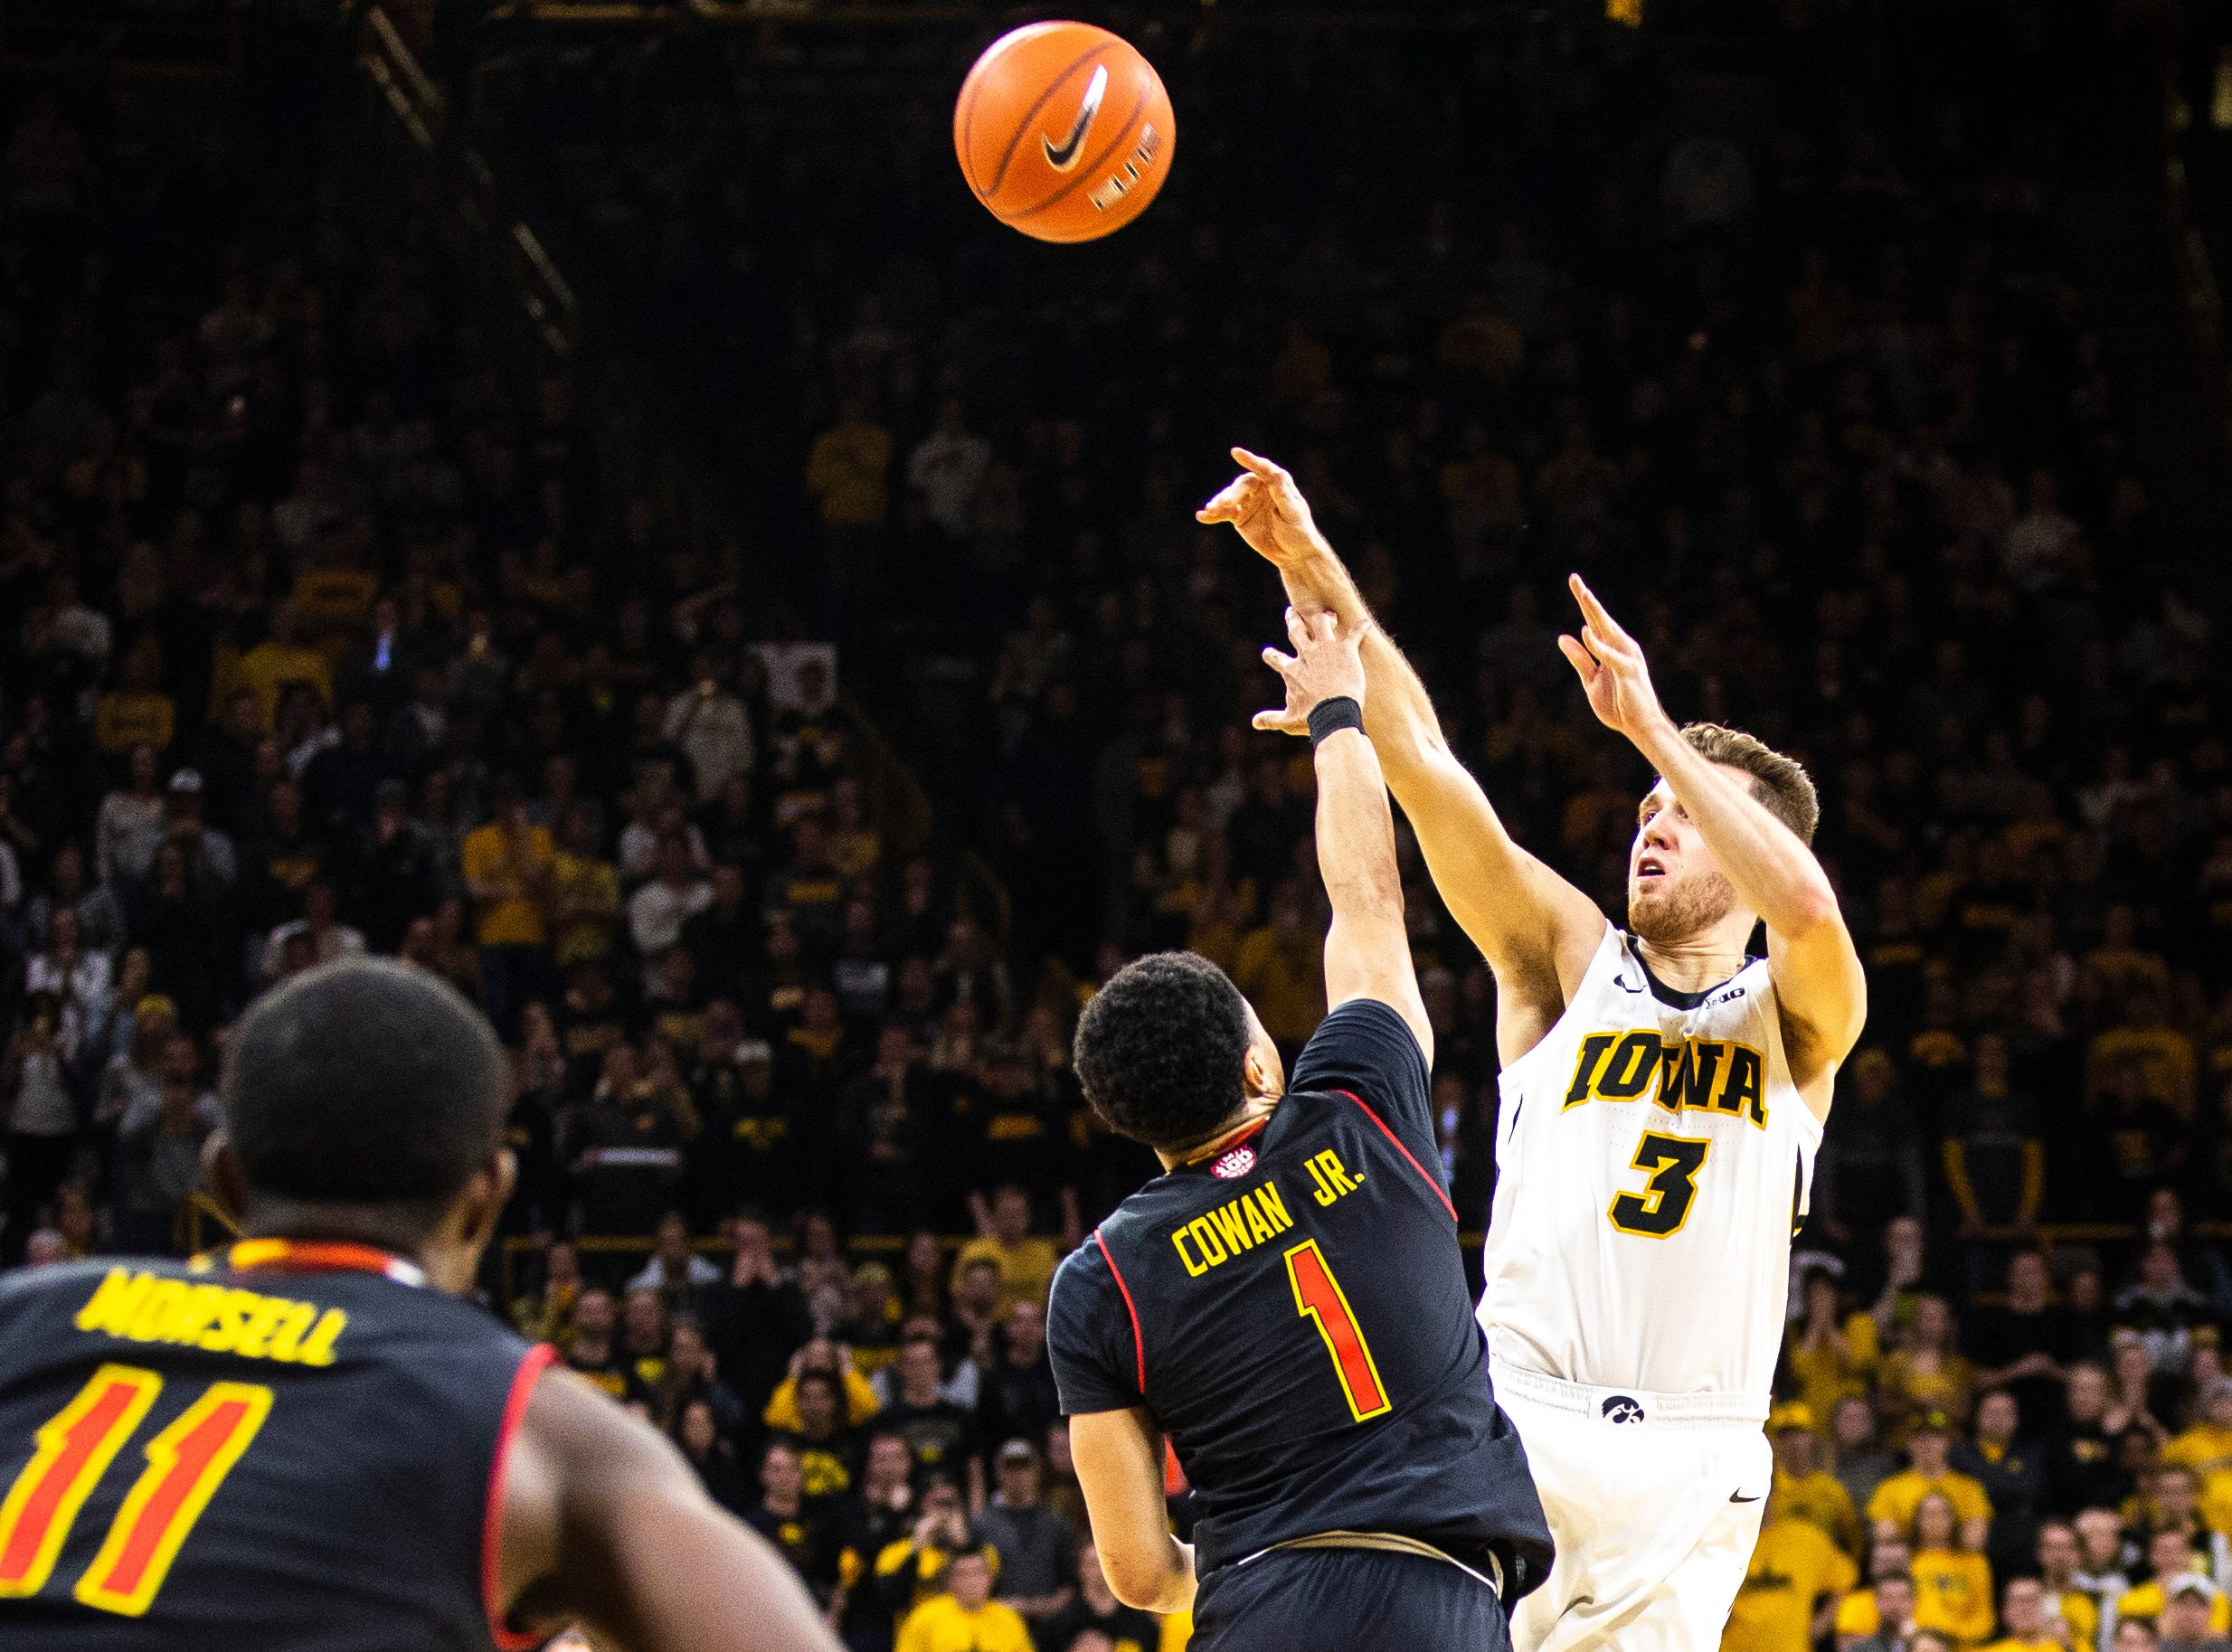 Iowa guard Jordan Bohannon (3) shoots a basket as time ticks down while Maryland guard Anthony Cowan Jr. (1) defends during a NCAA Big Ten Conference men's basketball game on Tuesday, Feb. 19, 2019 at Carver-Hawkeye Arena in Iowa City, Iowa.